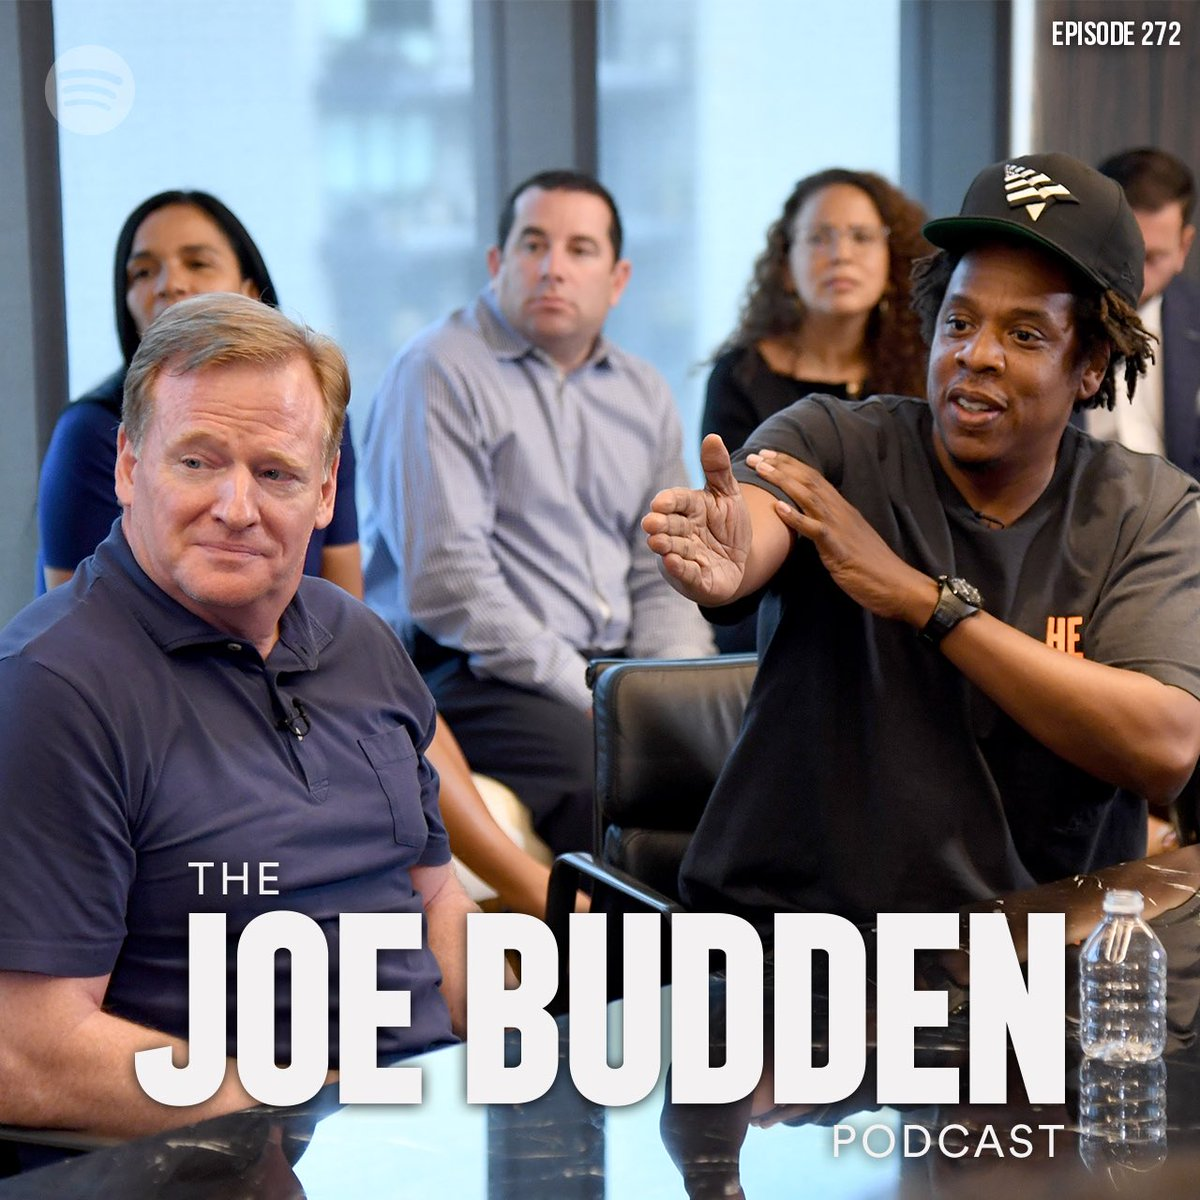 """The @JoeBudden Podcast Episode 272 """"Chummy Chummy"""" is available now! Stream exclusively on @Spotify LISTEN HERE 🎧: open.spotify.com/episode/40IOKq…"""